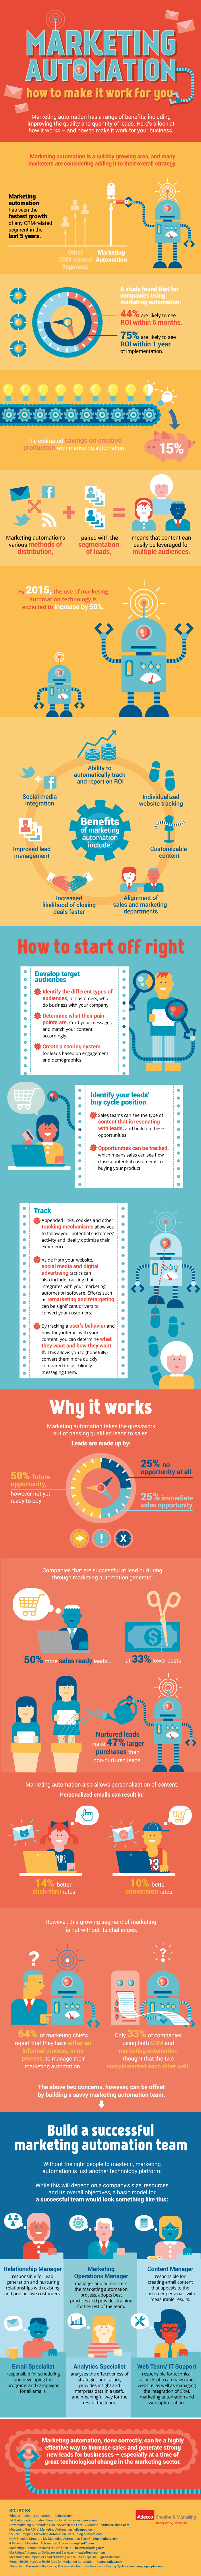 Marketing Automation - How To Make It Work For You